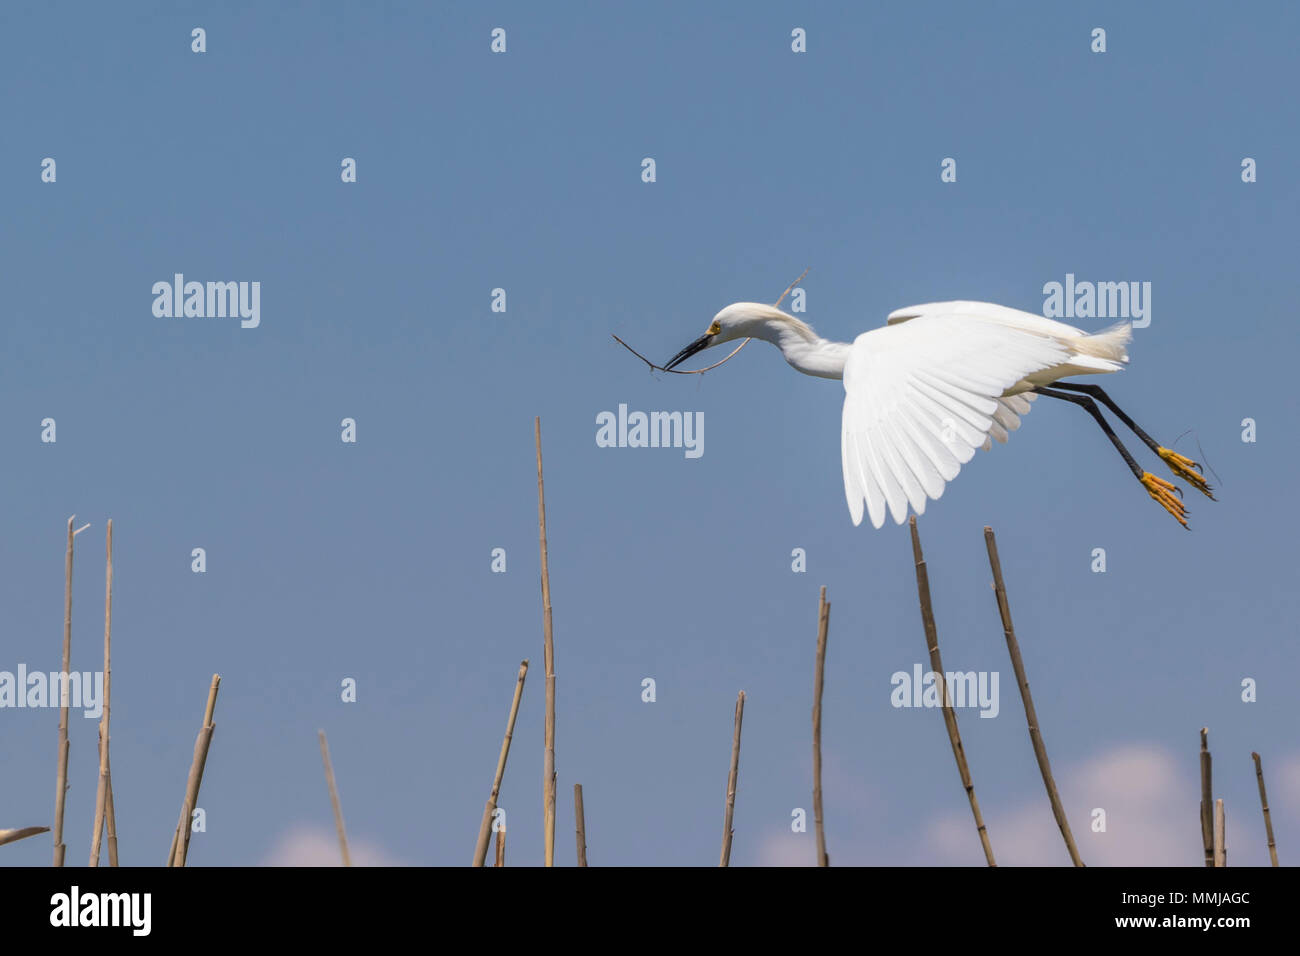 Snowy Egret in flight over Shoveler's Pond at Anahuac National Wildlife Refuge in Southeastern Texas. - Stock Image